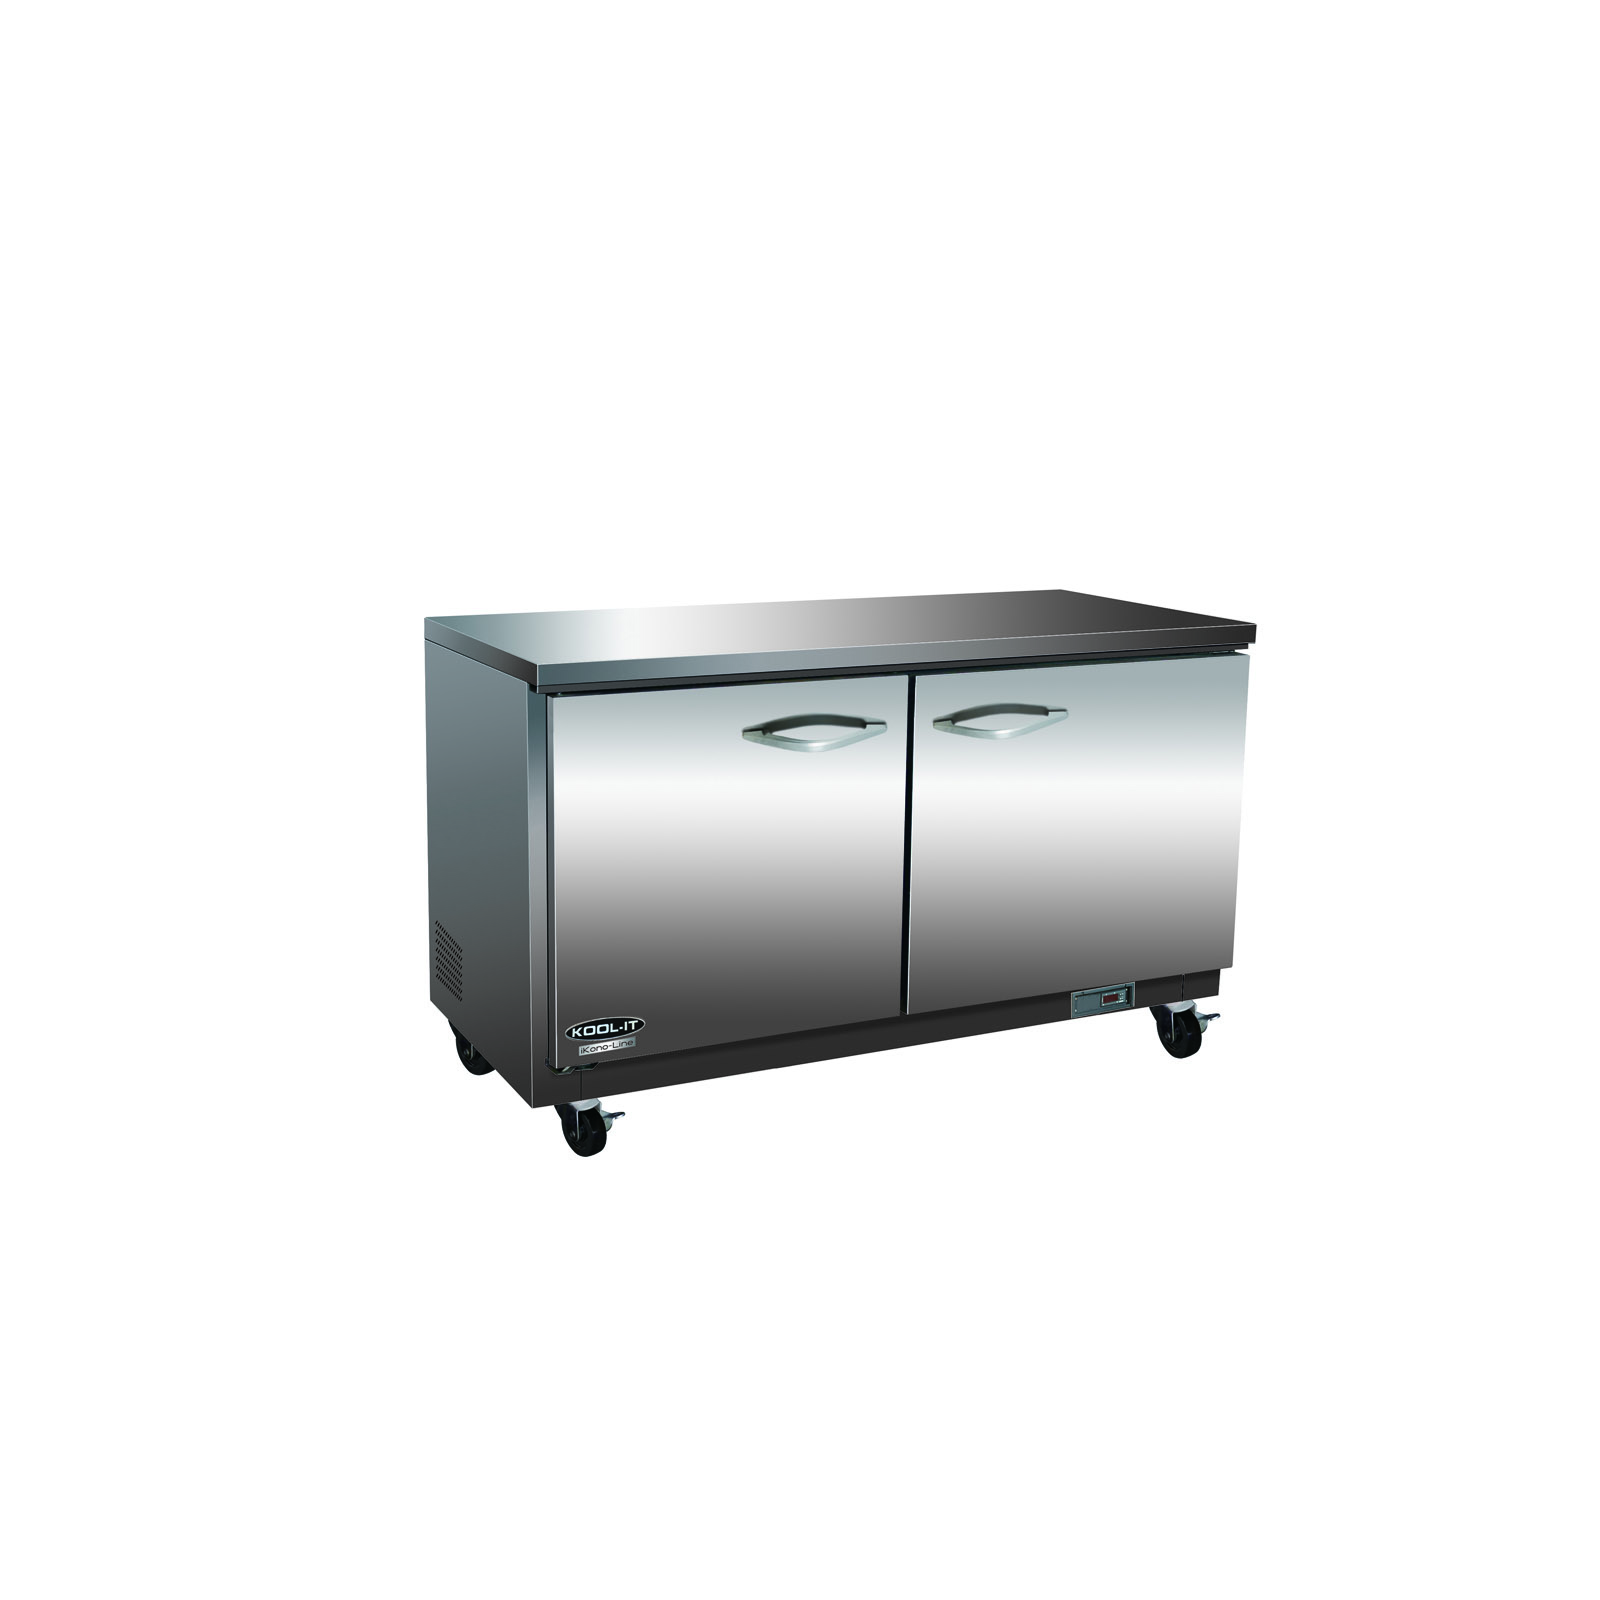 MVP Group LLC IUC48F freezer, undercounter, reach-in